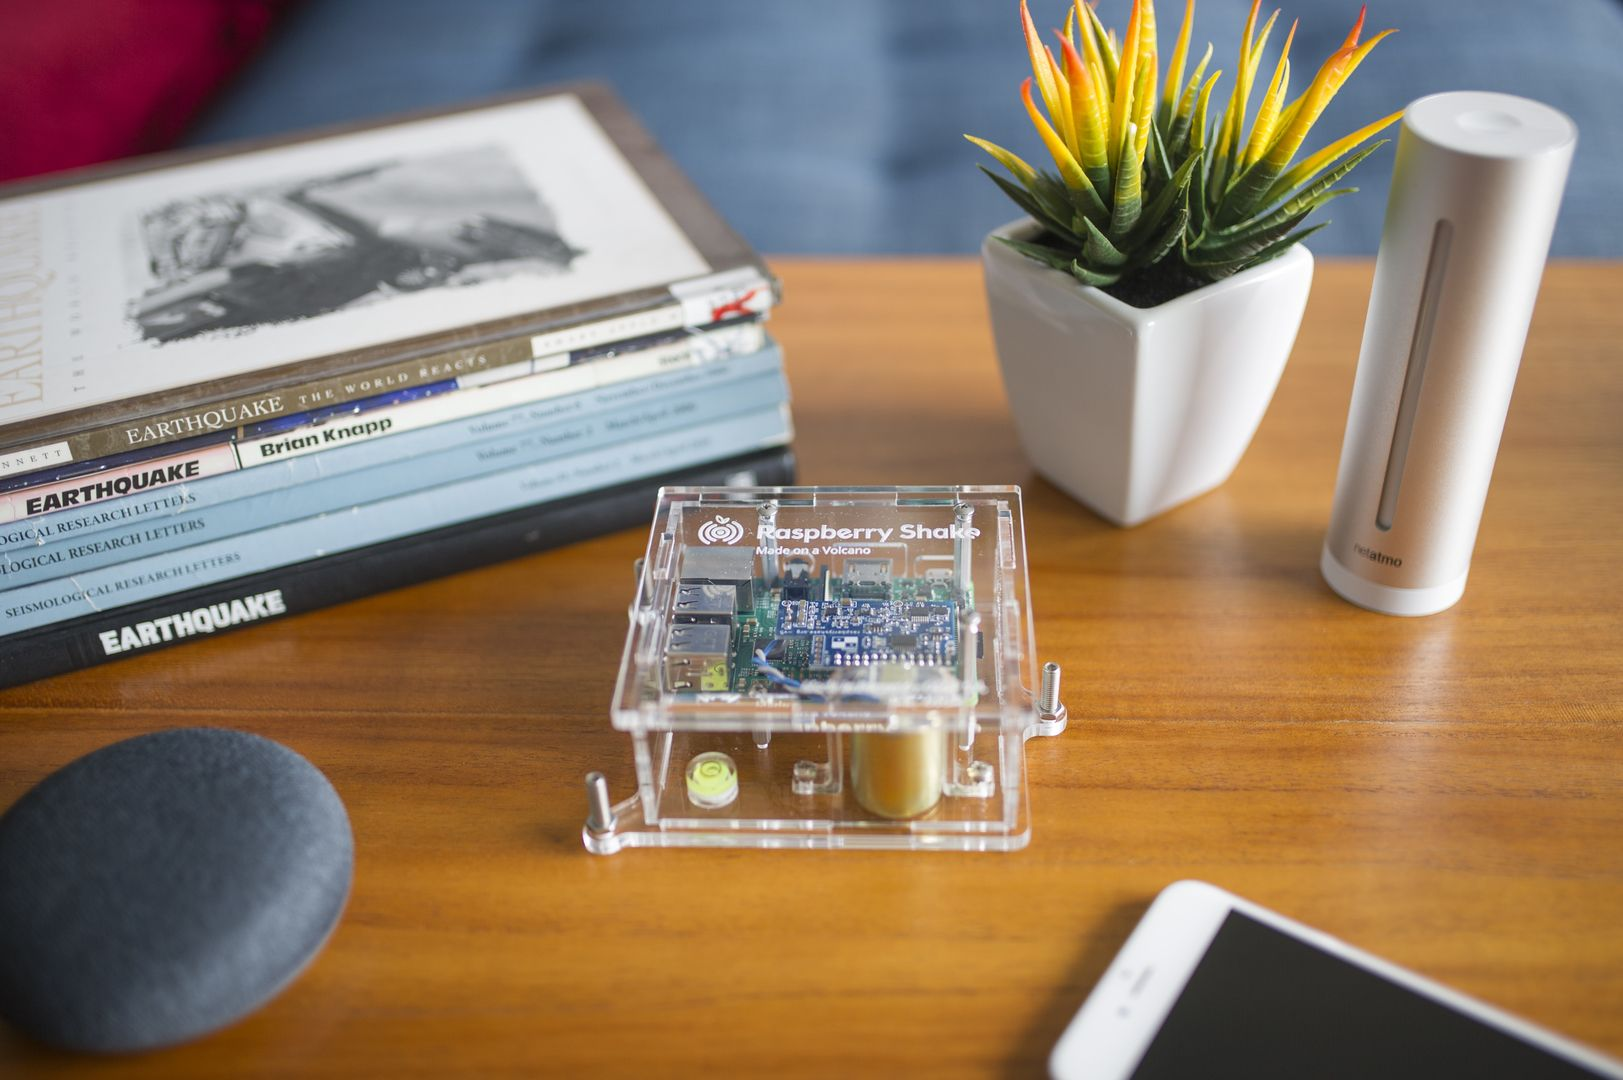 Turnkey IoT Home Earth Monitor RS 1D at Lounge Coffee Table